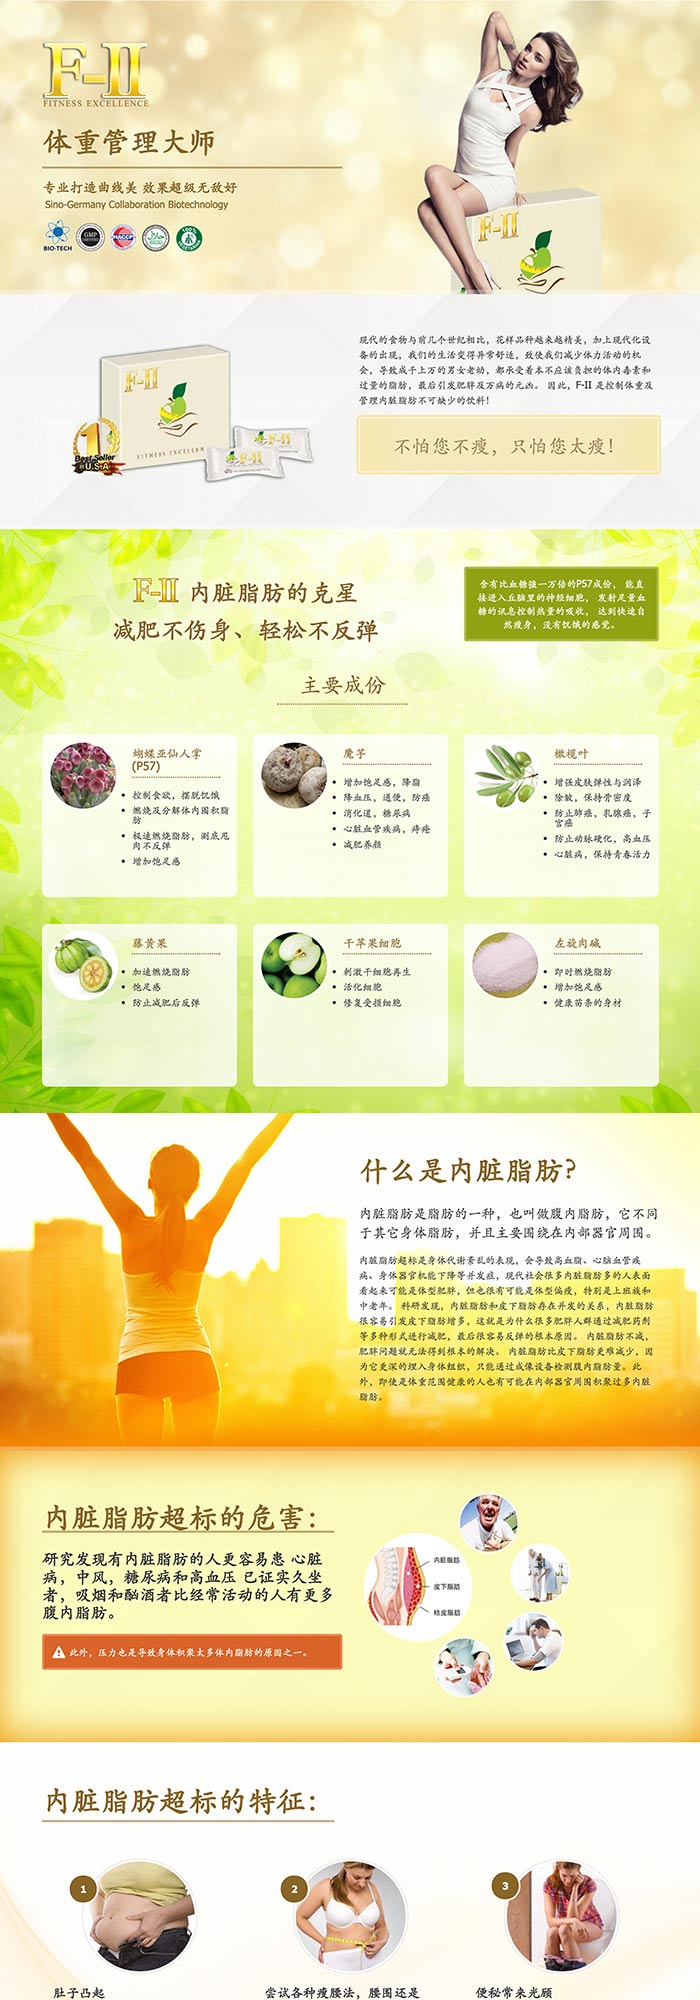 F-II Product Webpage Design (Chinese)